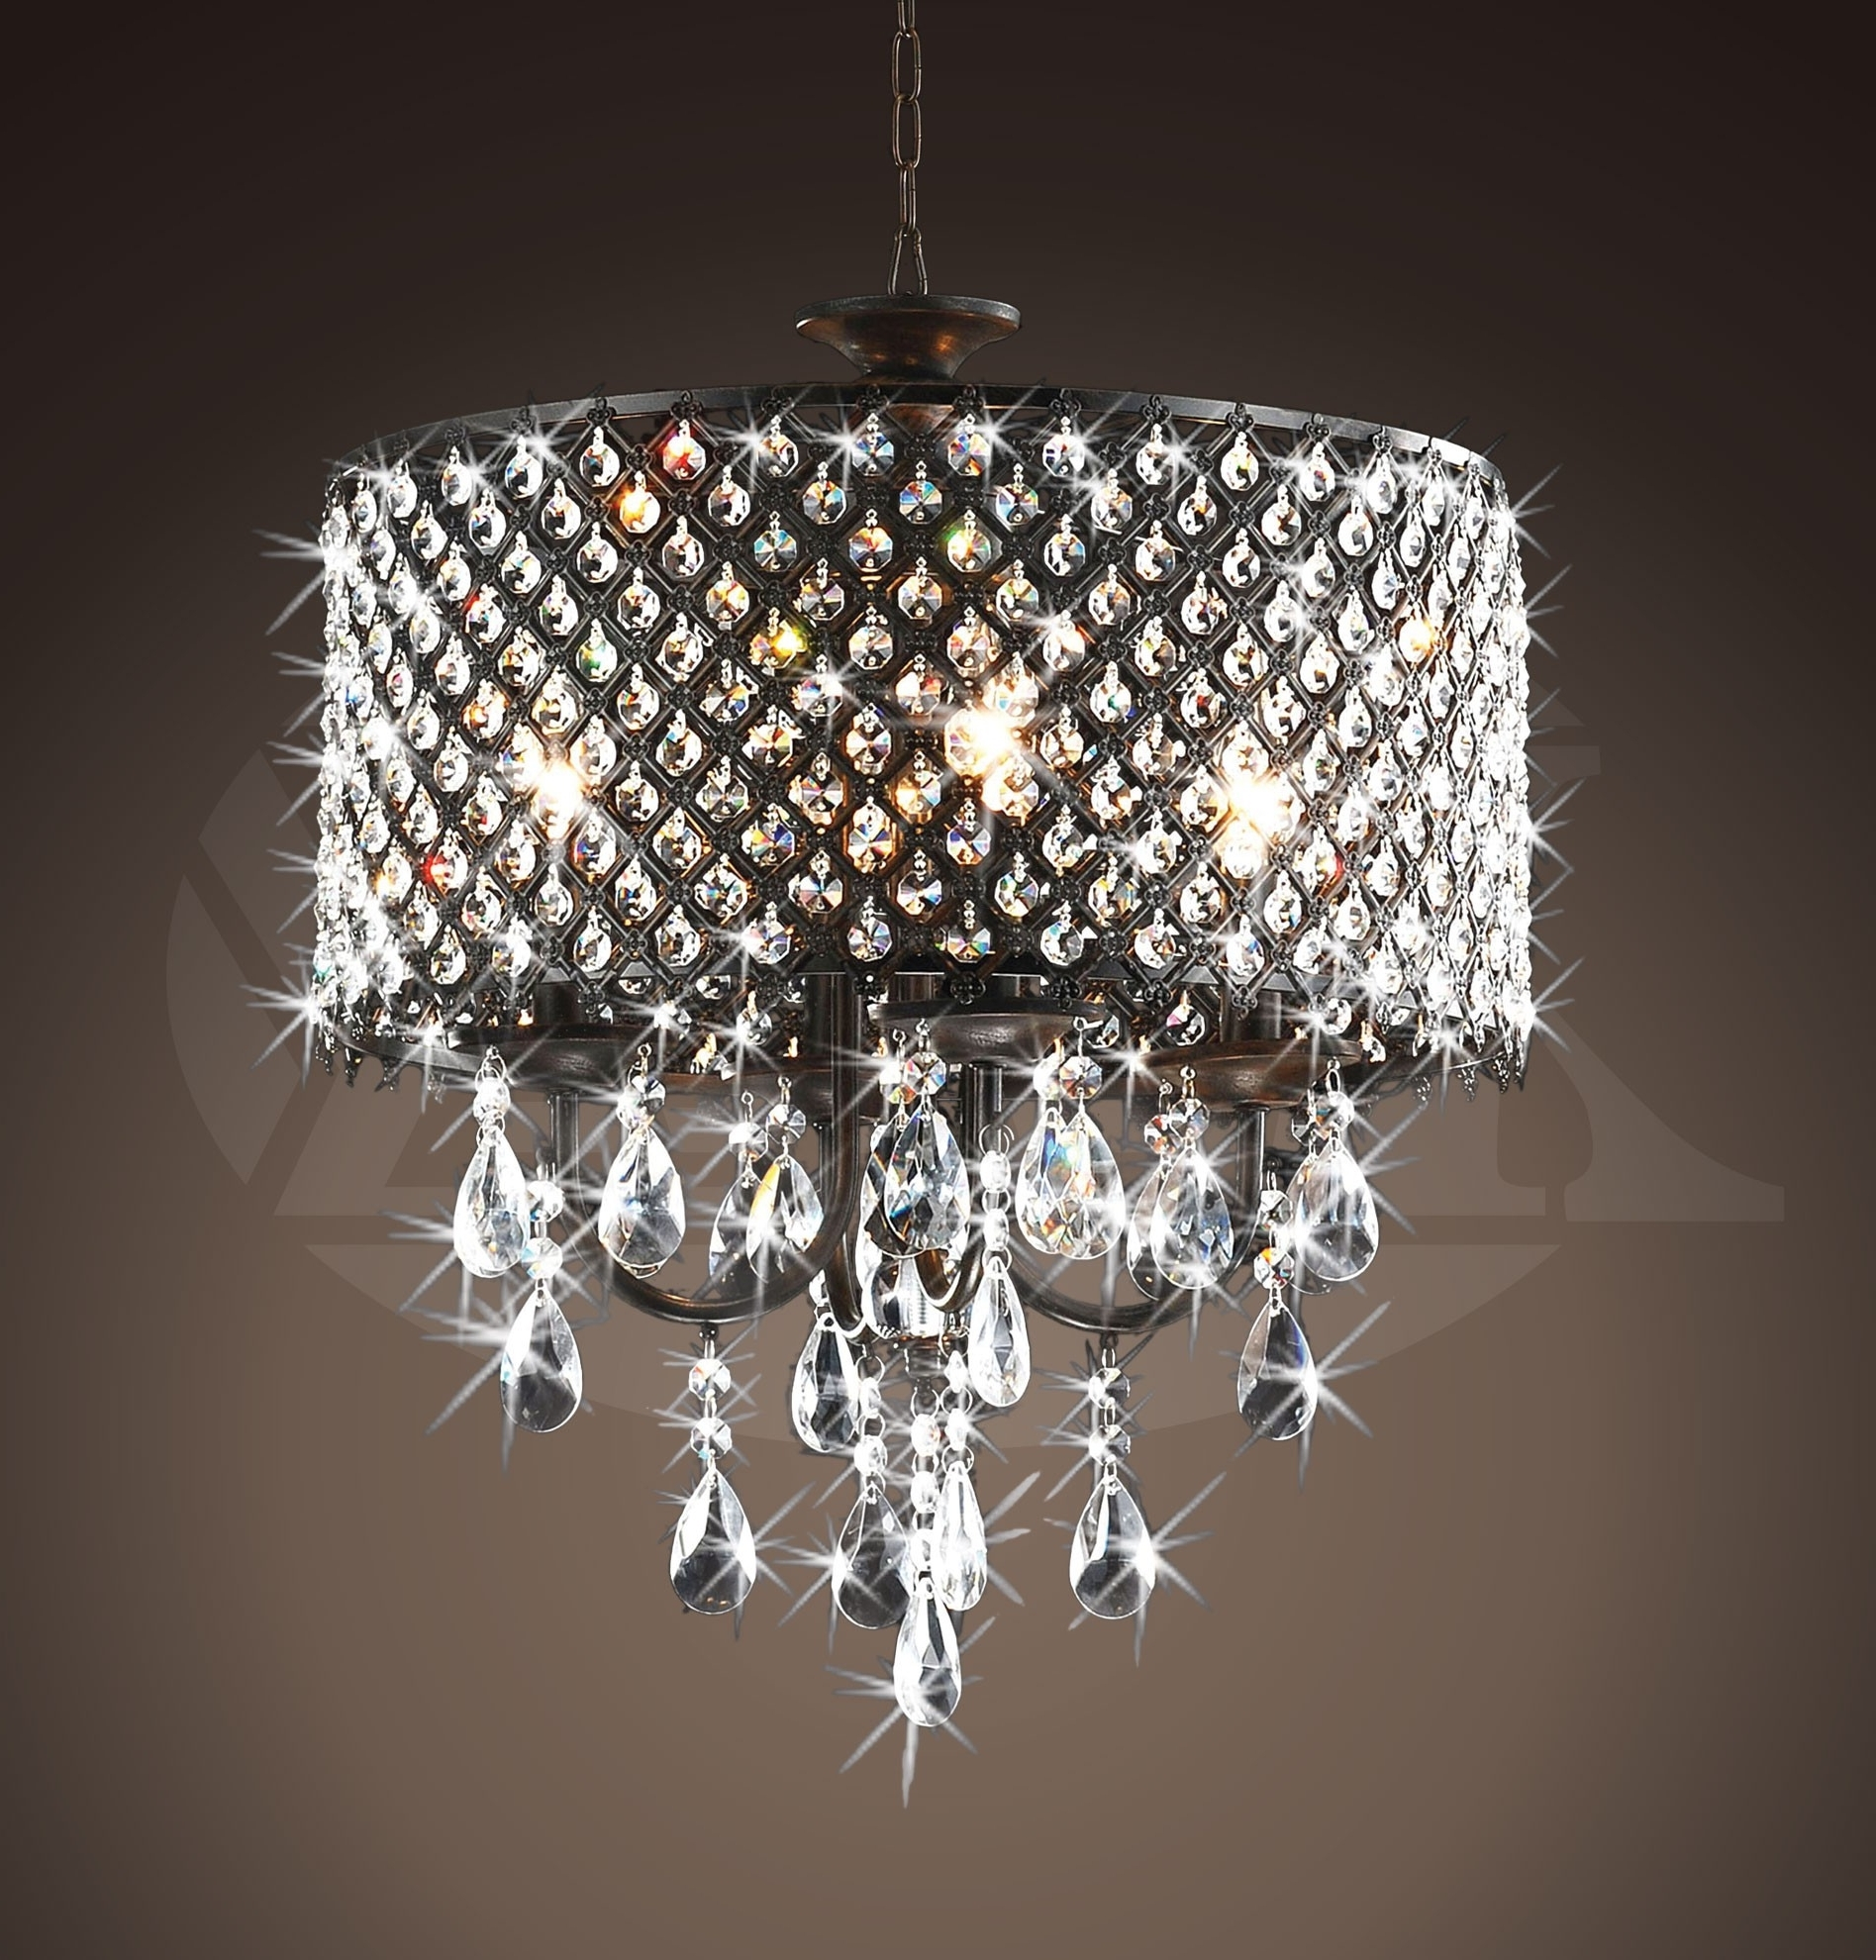 2019 Crystal And Brass Chandelier With Rachelle 4 Light Round Antique Bronze Brass Crystal Chandelier (View 3 of 20)